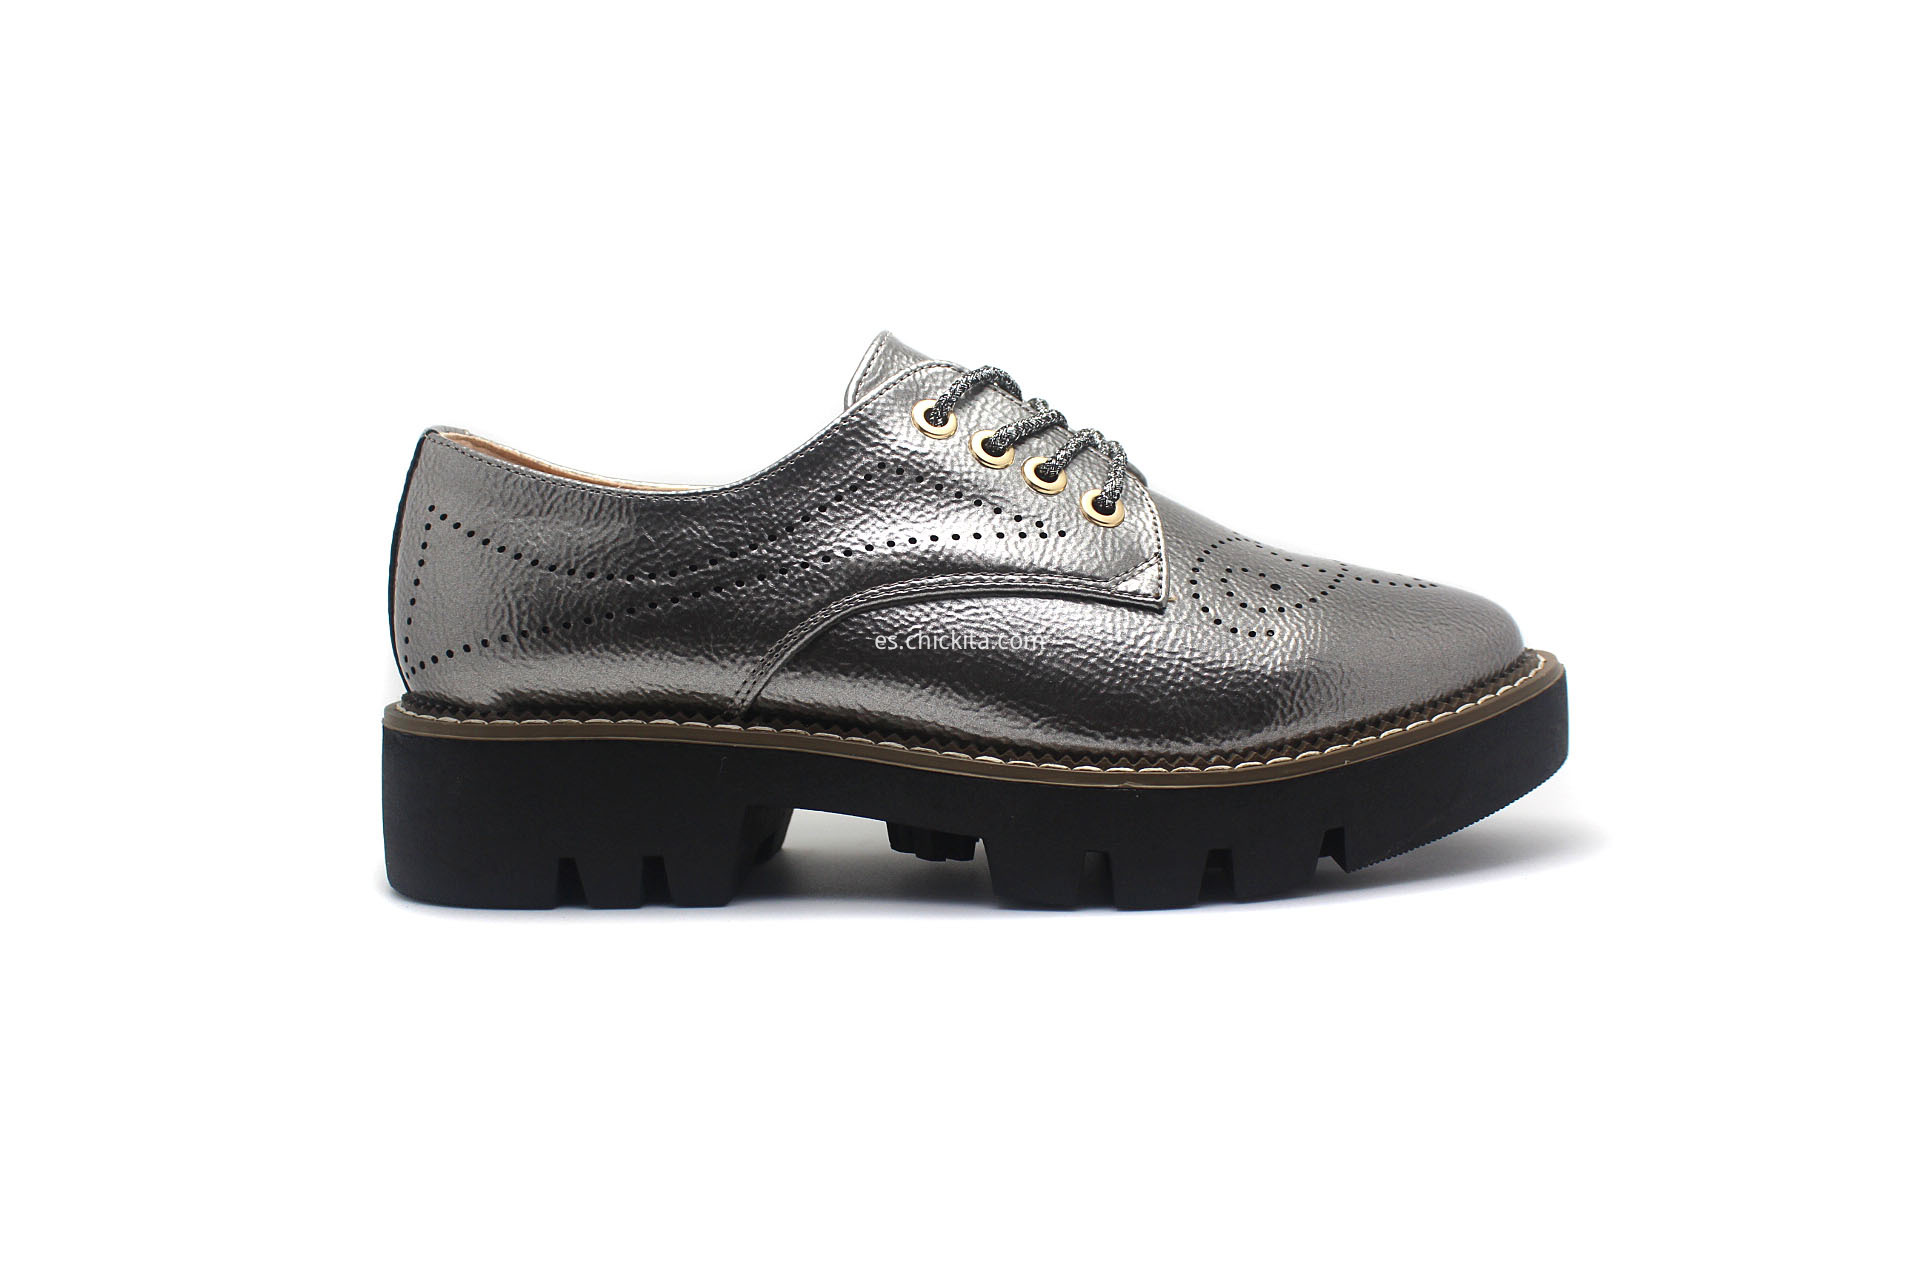 Oxfords shoes in fashion idea